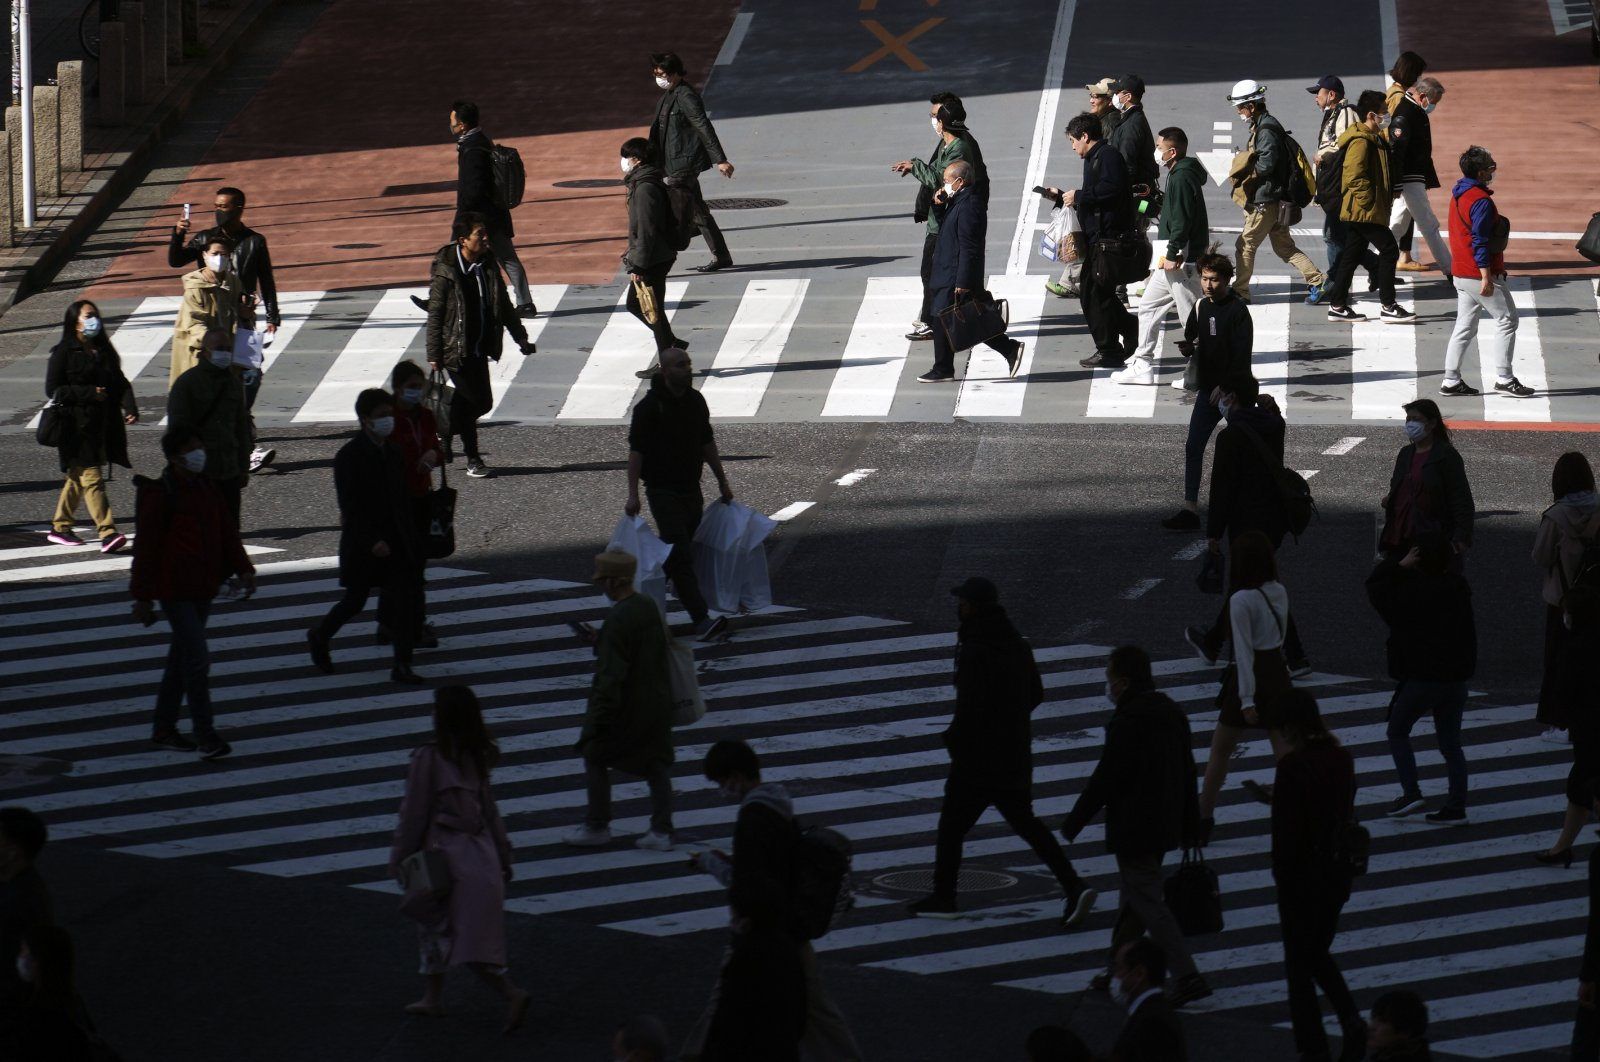 Fewer than usual people at Shibuya Scramble Crossing are seen in Tokyo, Japan, Tuesday, April 14, 2020. (AP Photo)